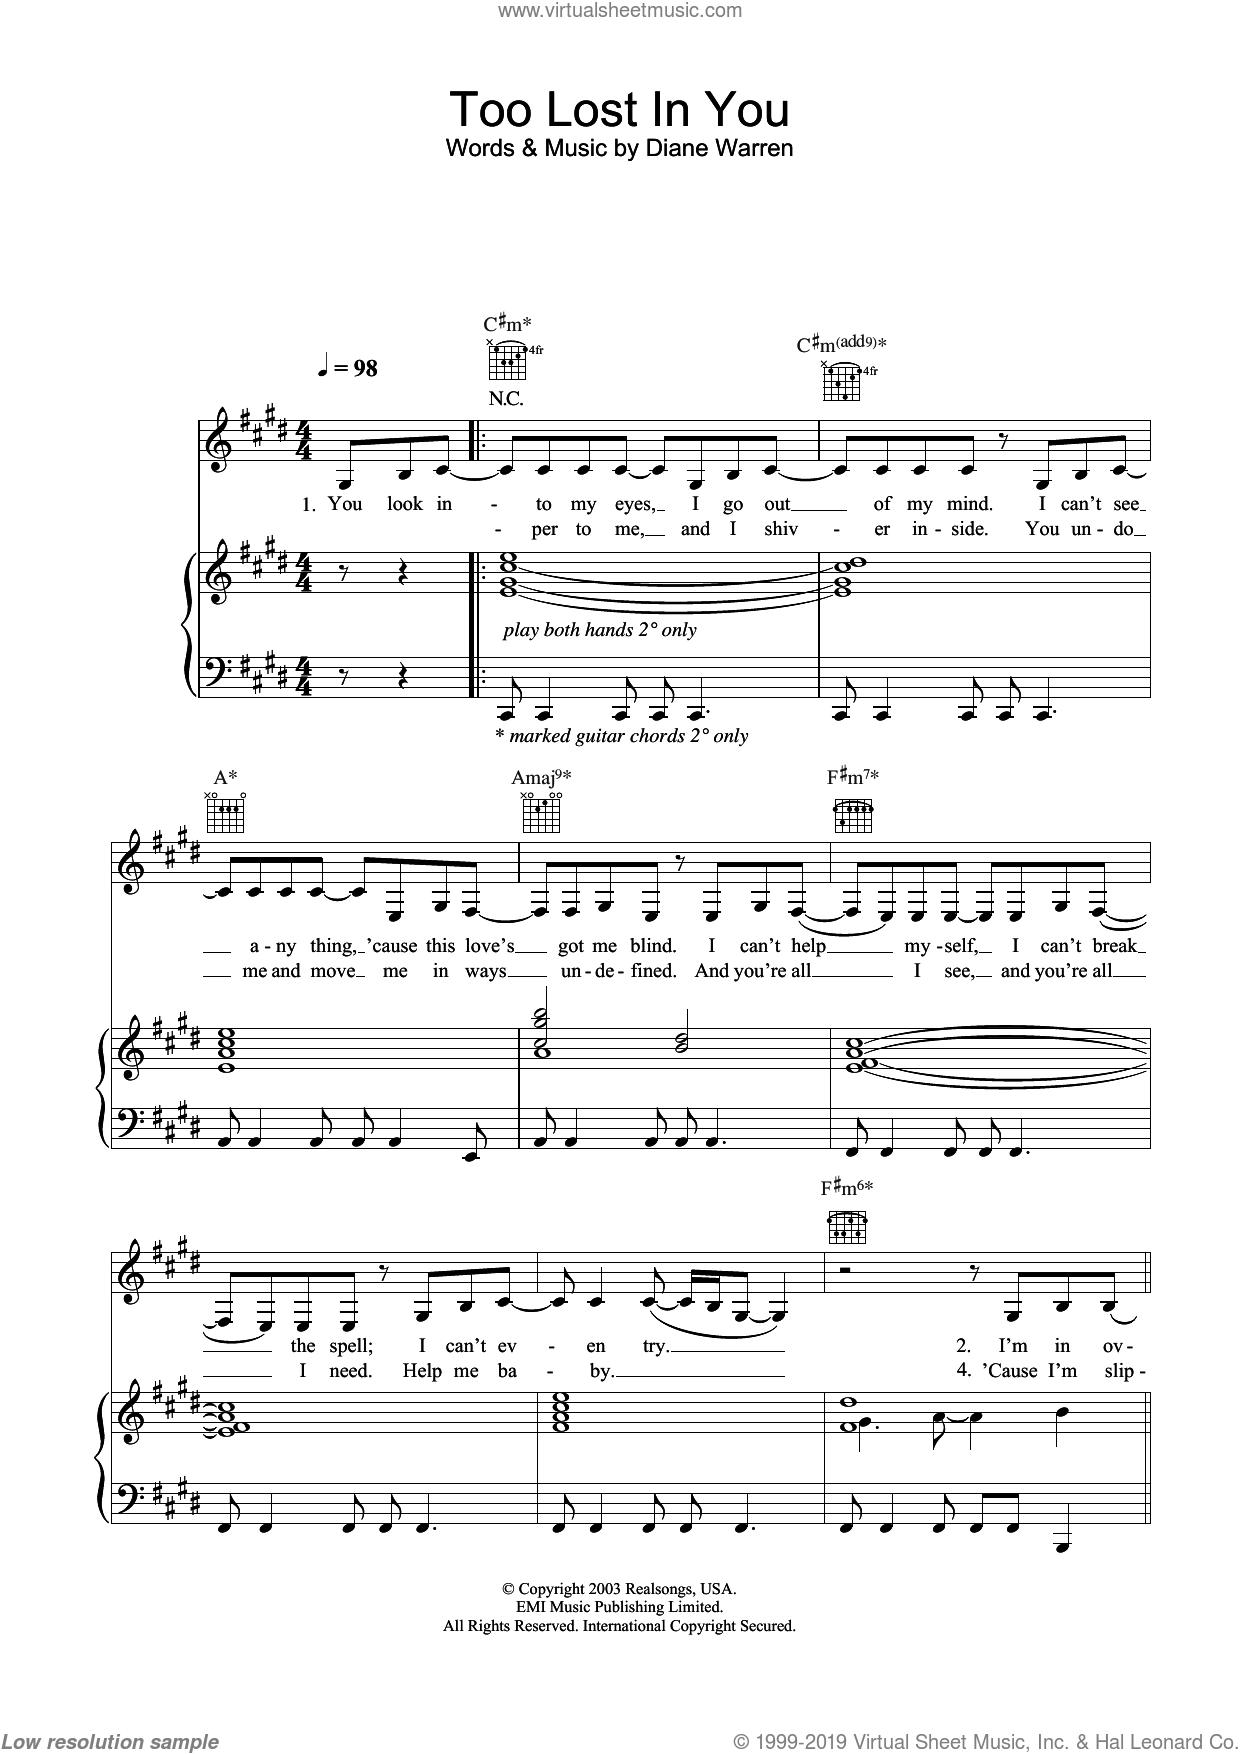 Too Lost In You sheet music for voice, piano or guitar by Sugababes and Diane Warren, intermediate skill level